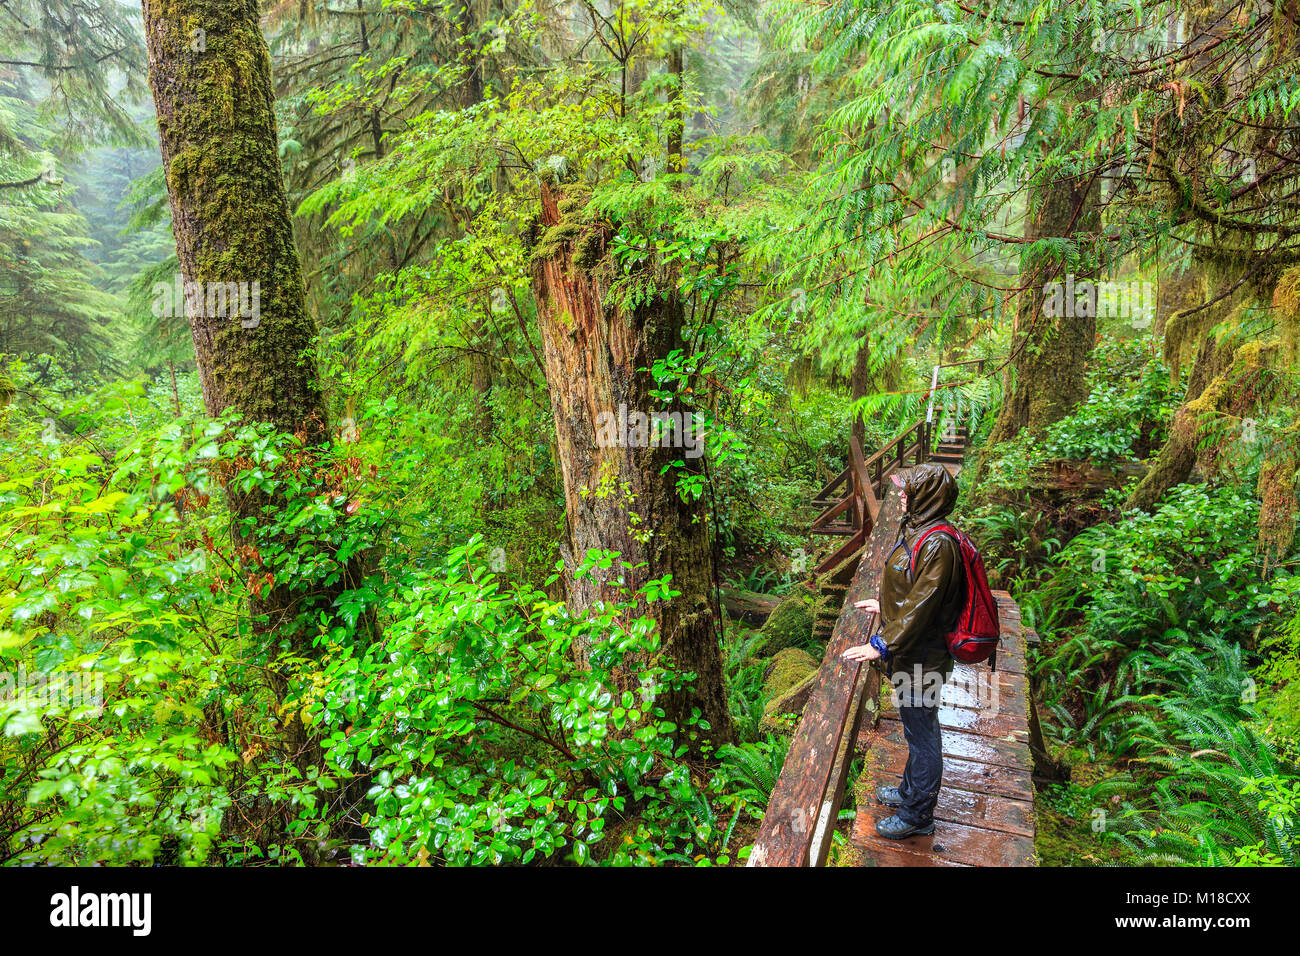 Woman hiking the Rainforest Trail, Pacific Rim National Park, Vancouver Island, British Columbia, Canada. - Stock Image